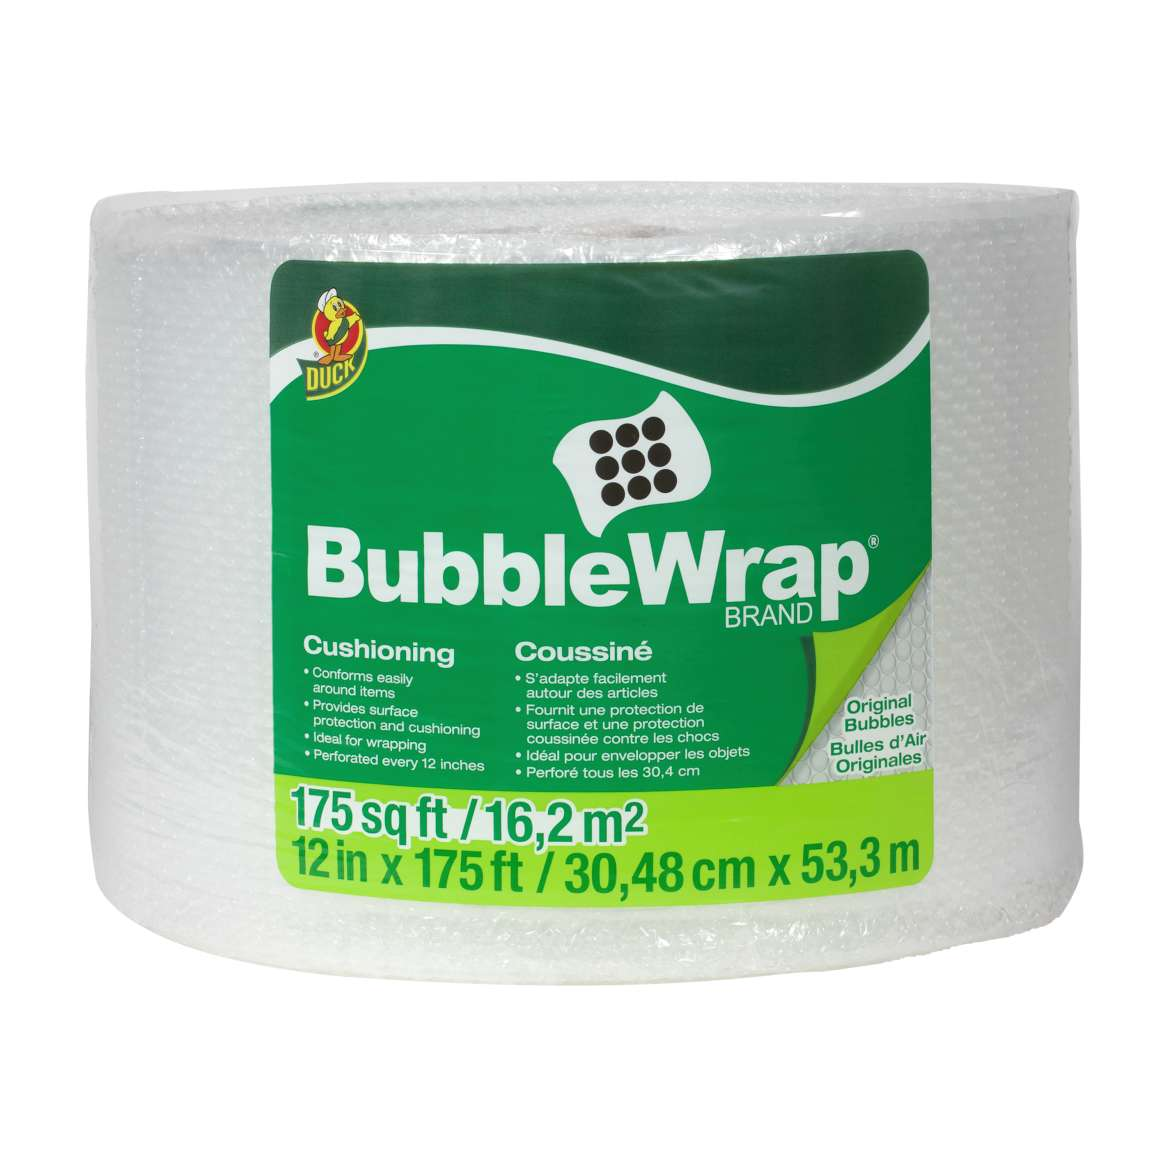 Duck® Brand Original Bubble Wrap® Cushioning - Clear, 12 in. x 175 ft. Image